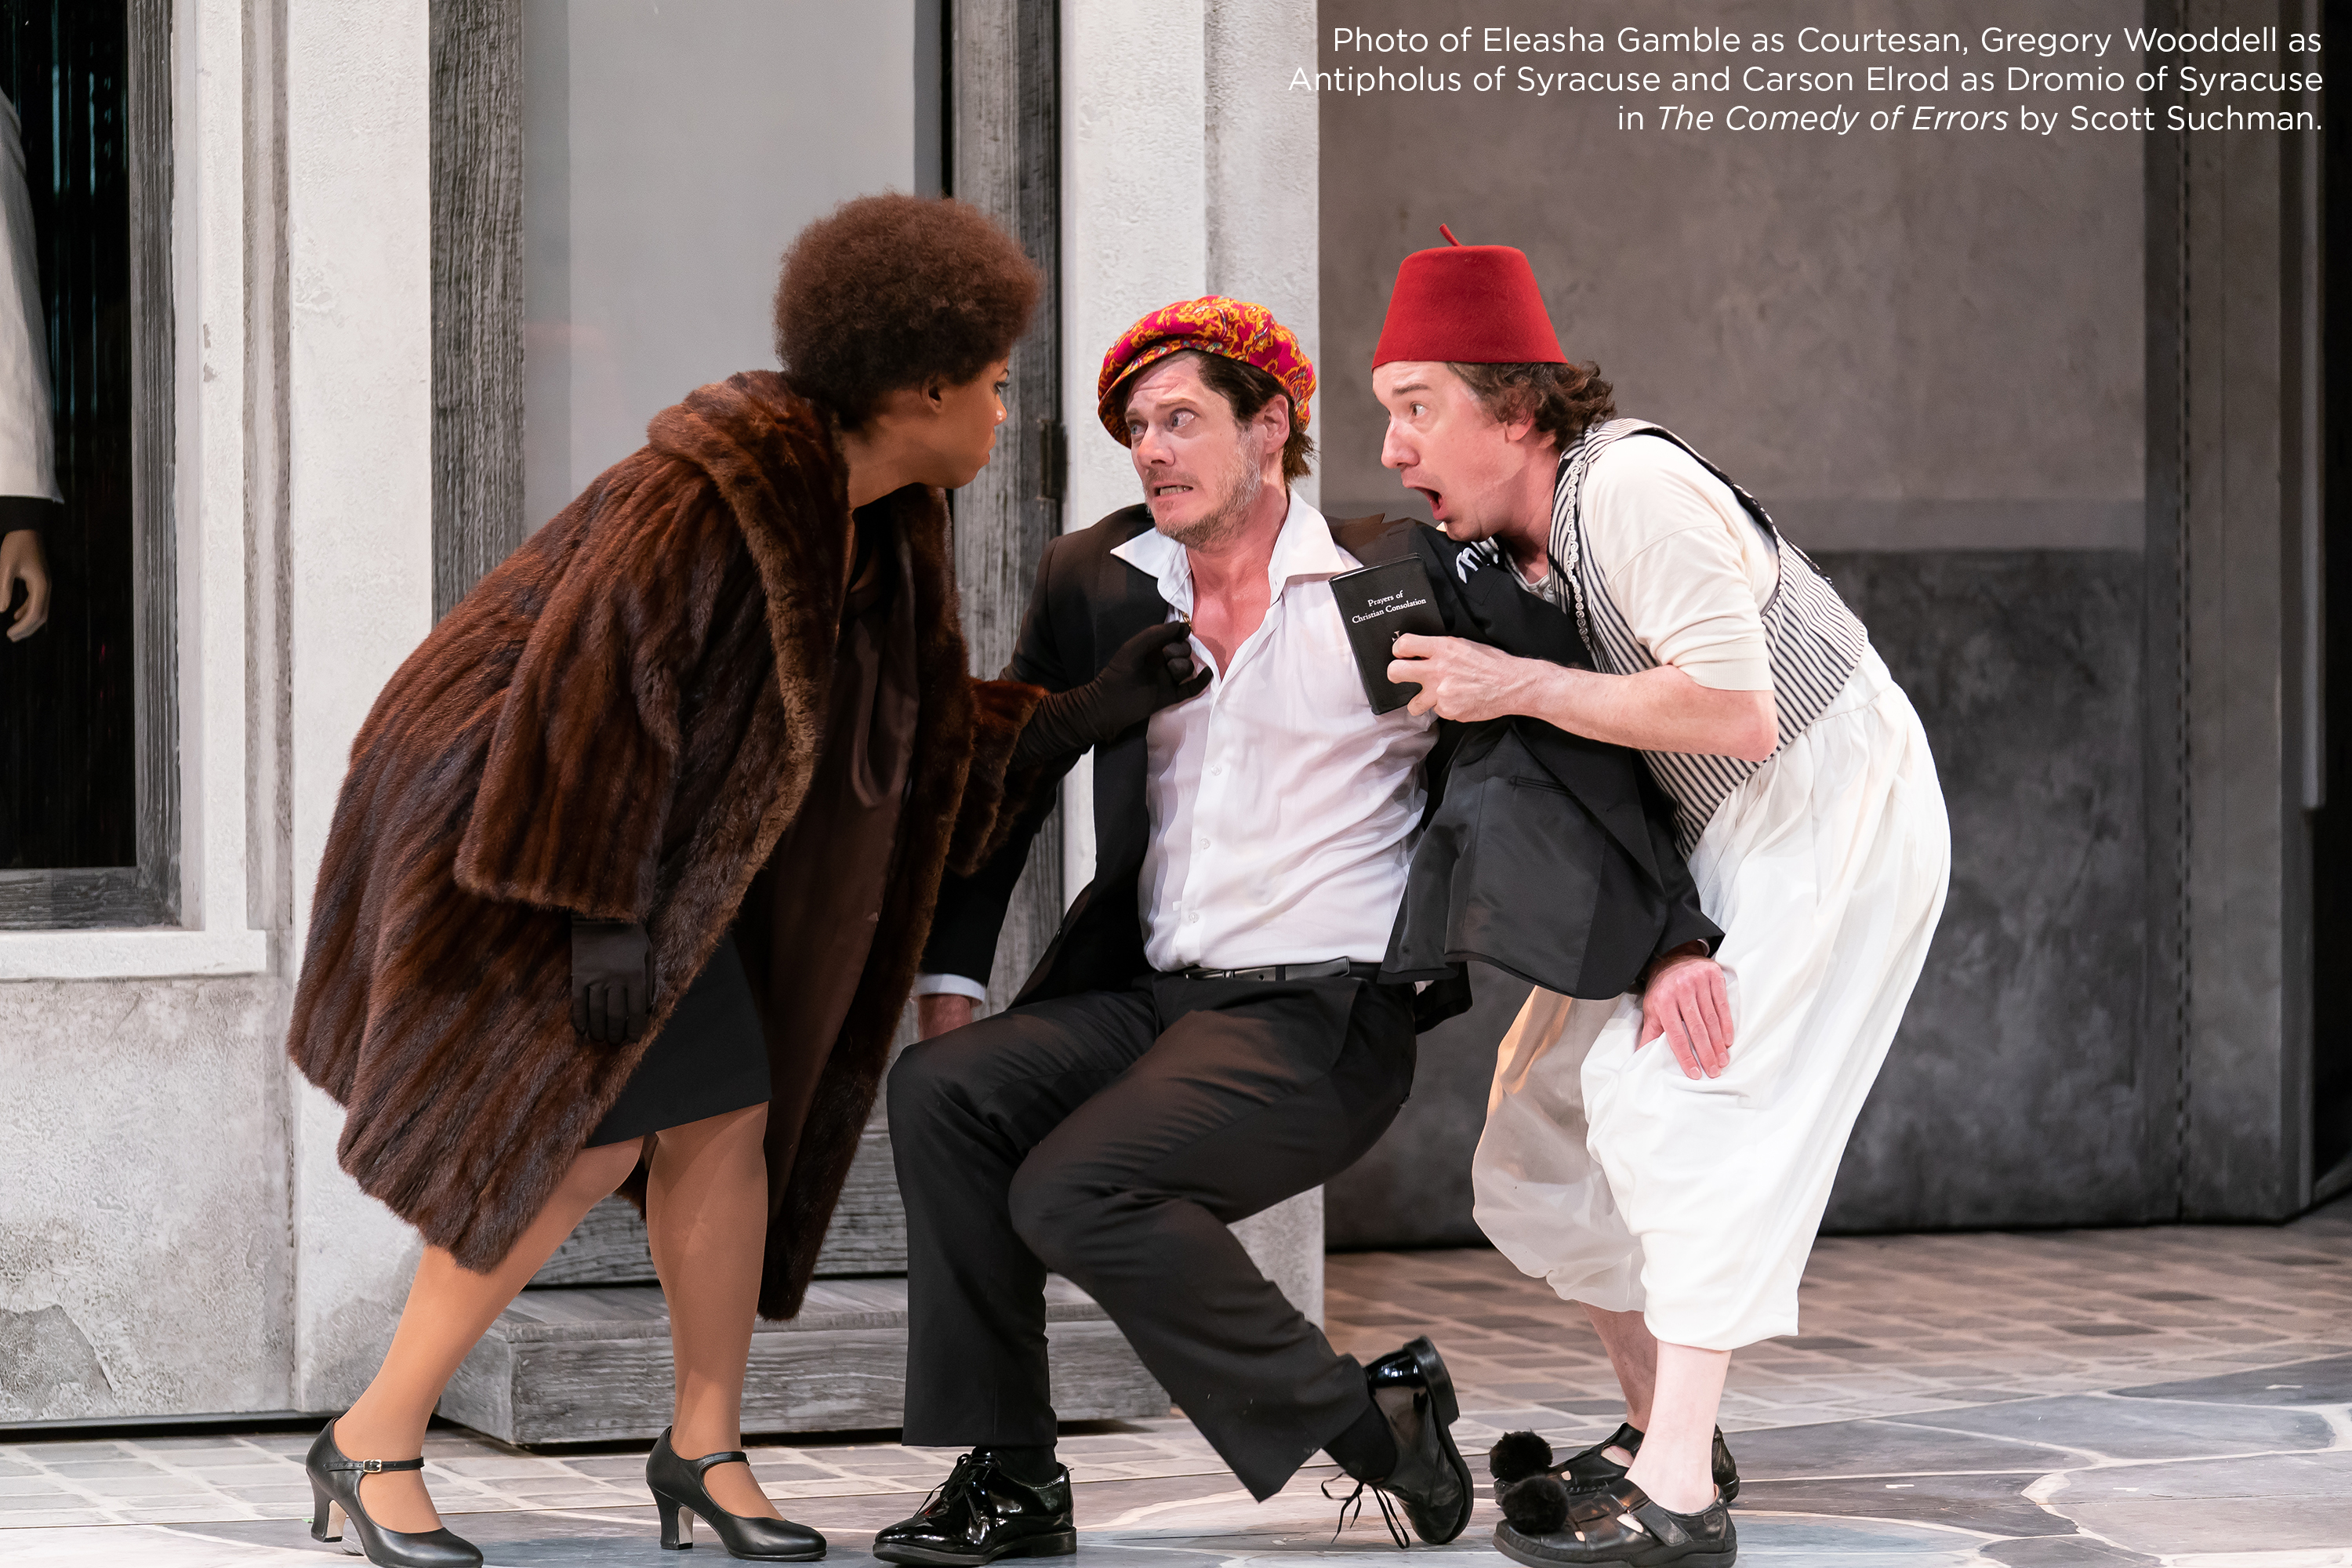 Photo of Eleasha Gamble as Courtesan, Gregory Wooddell as Antipholus of Syracuse and Carson Elrod as Dromio of Syracuse in The Comedy of Errors by Scott Suchman.